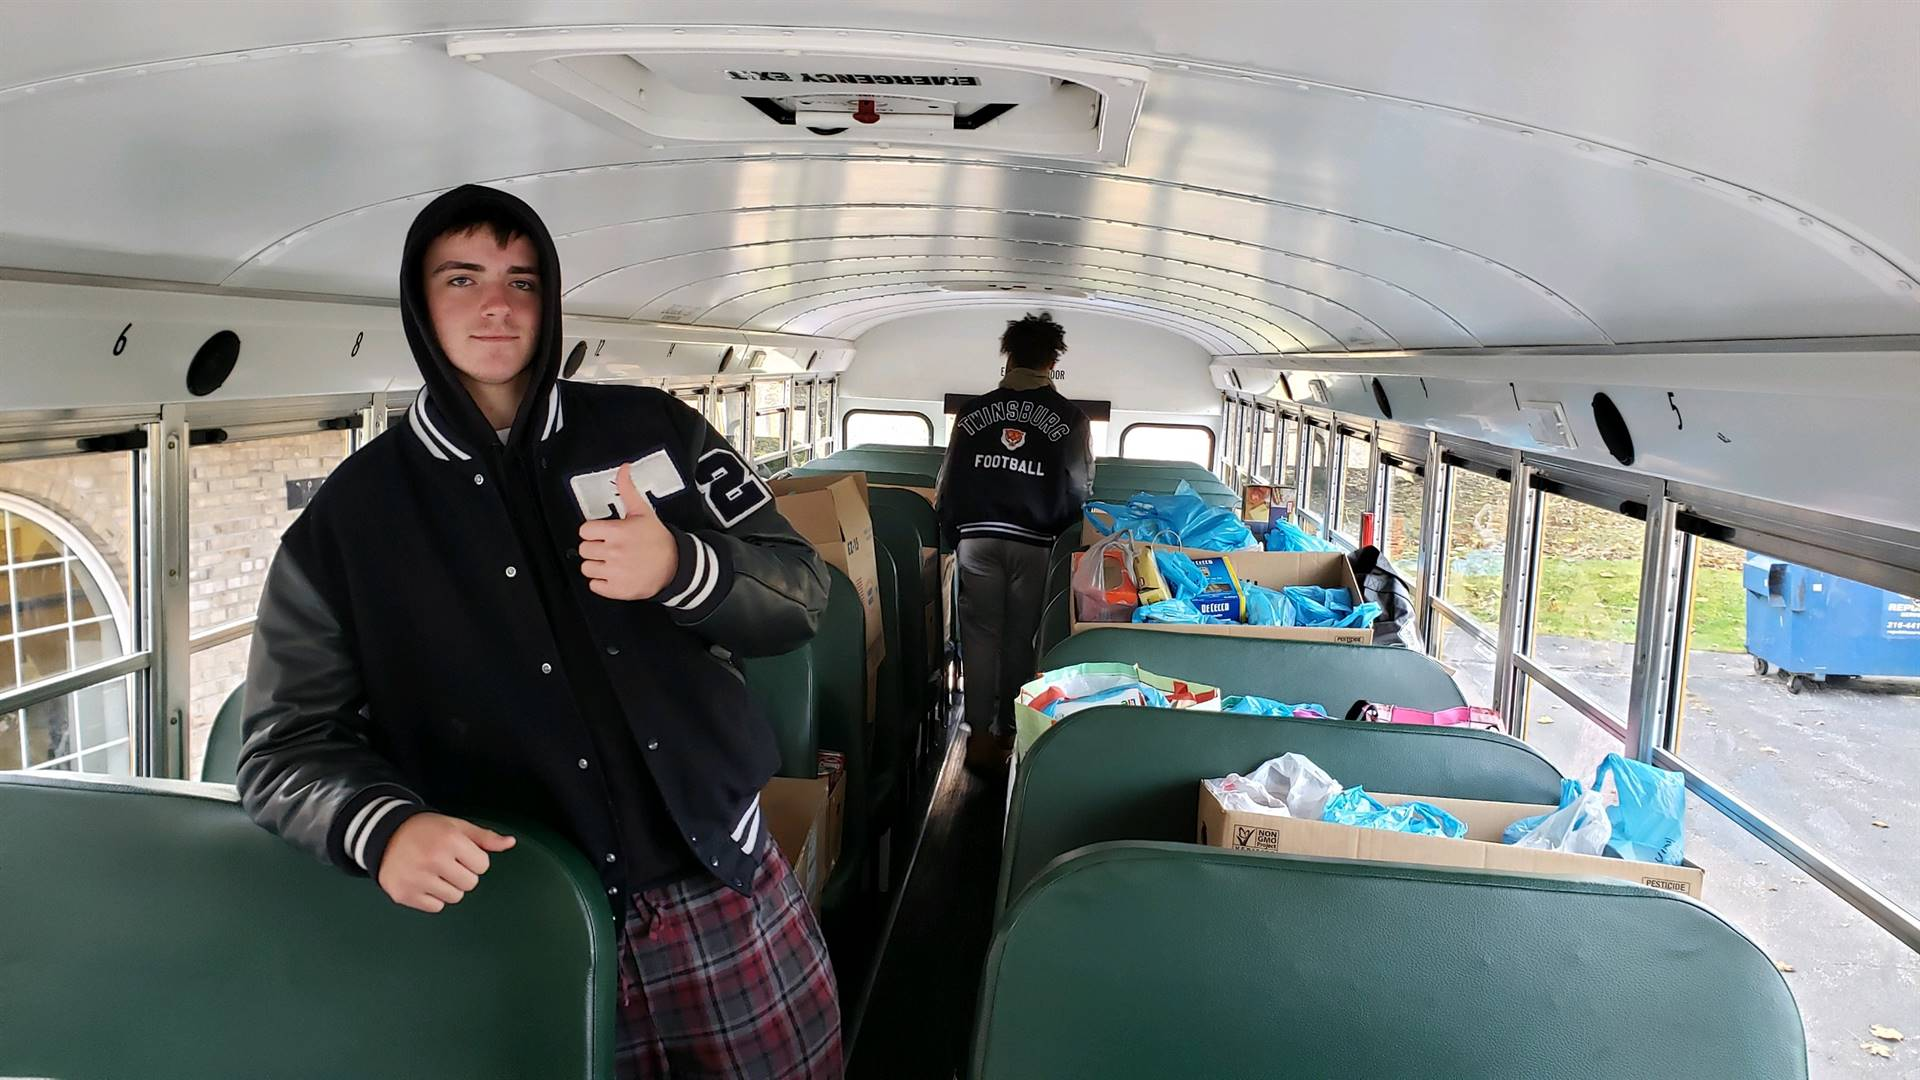 Students standing in a bus filled with nonperishable goods